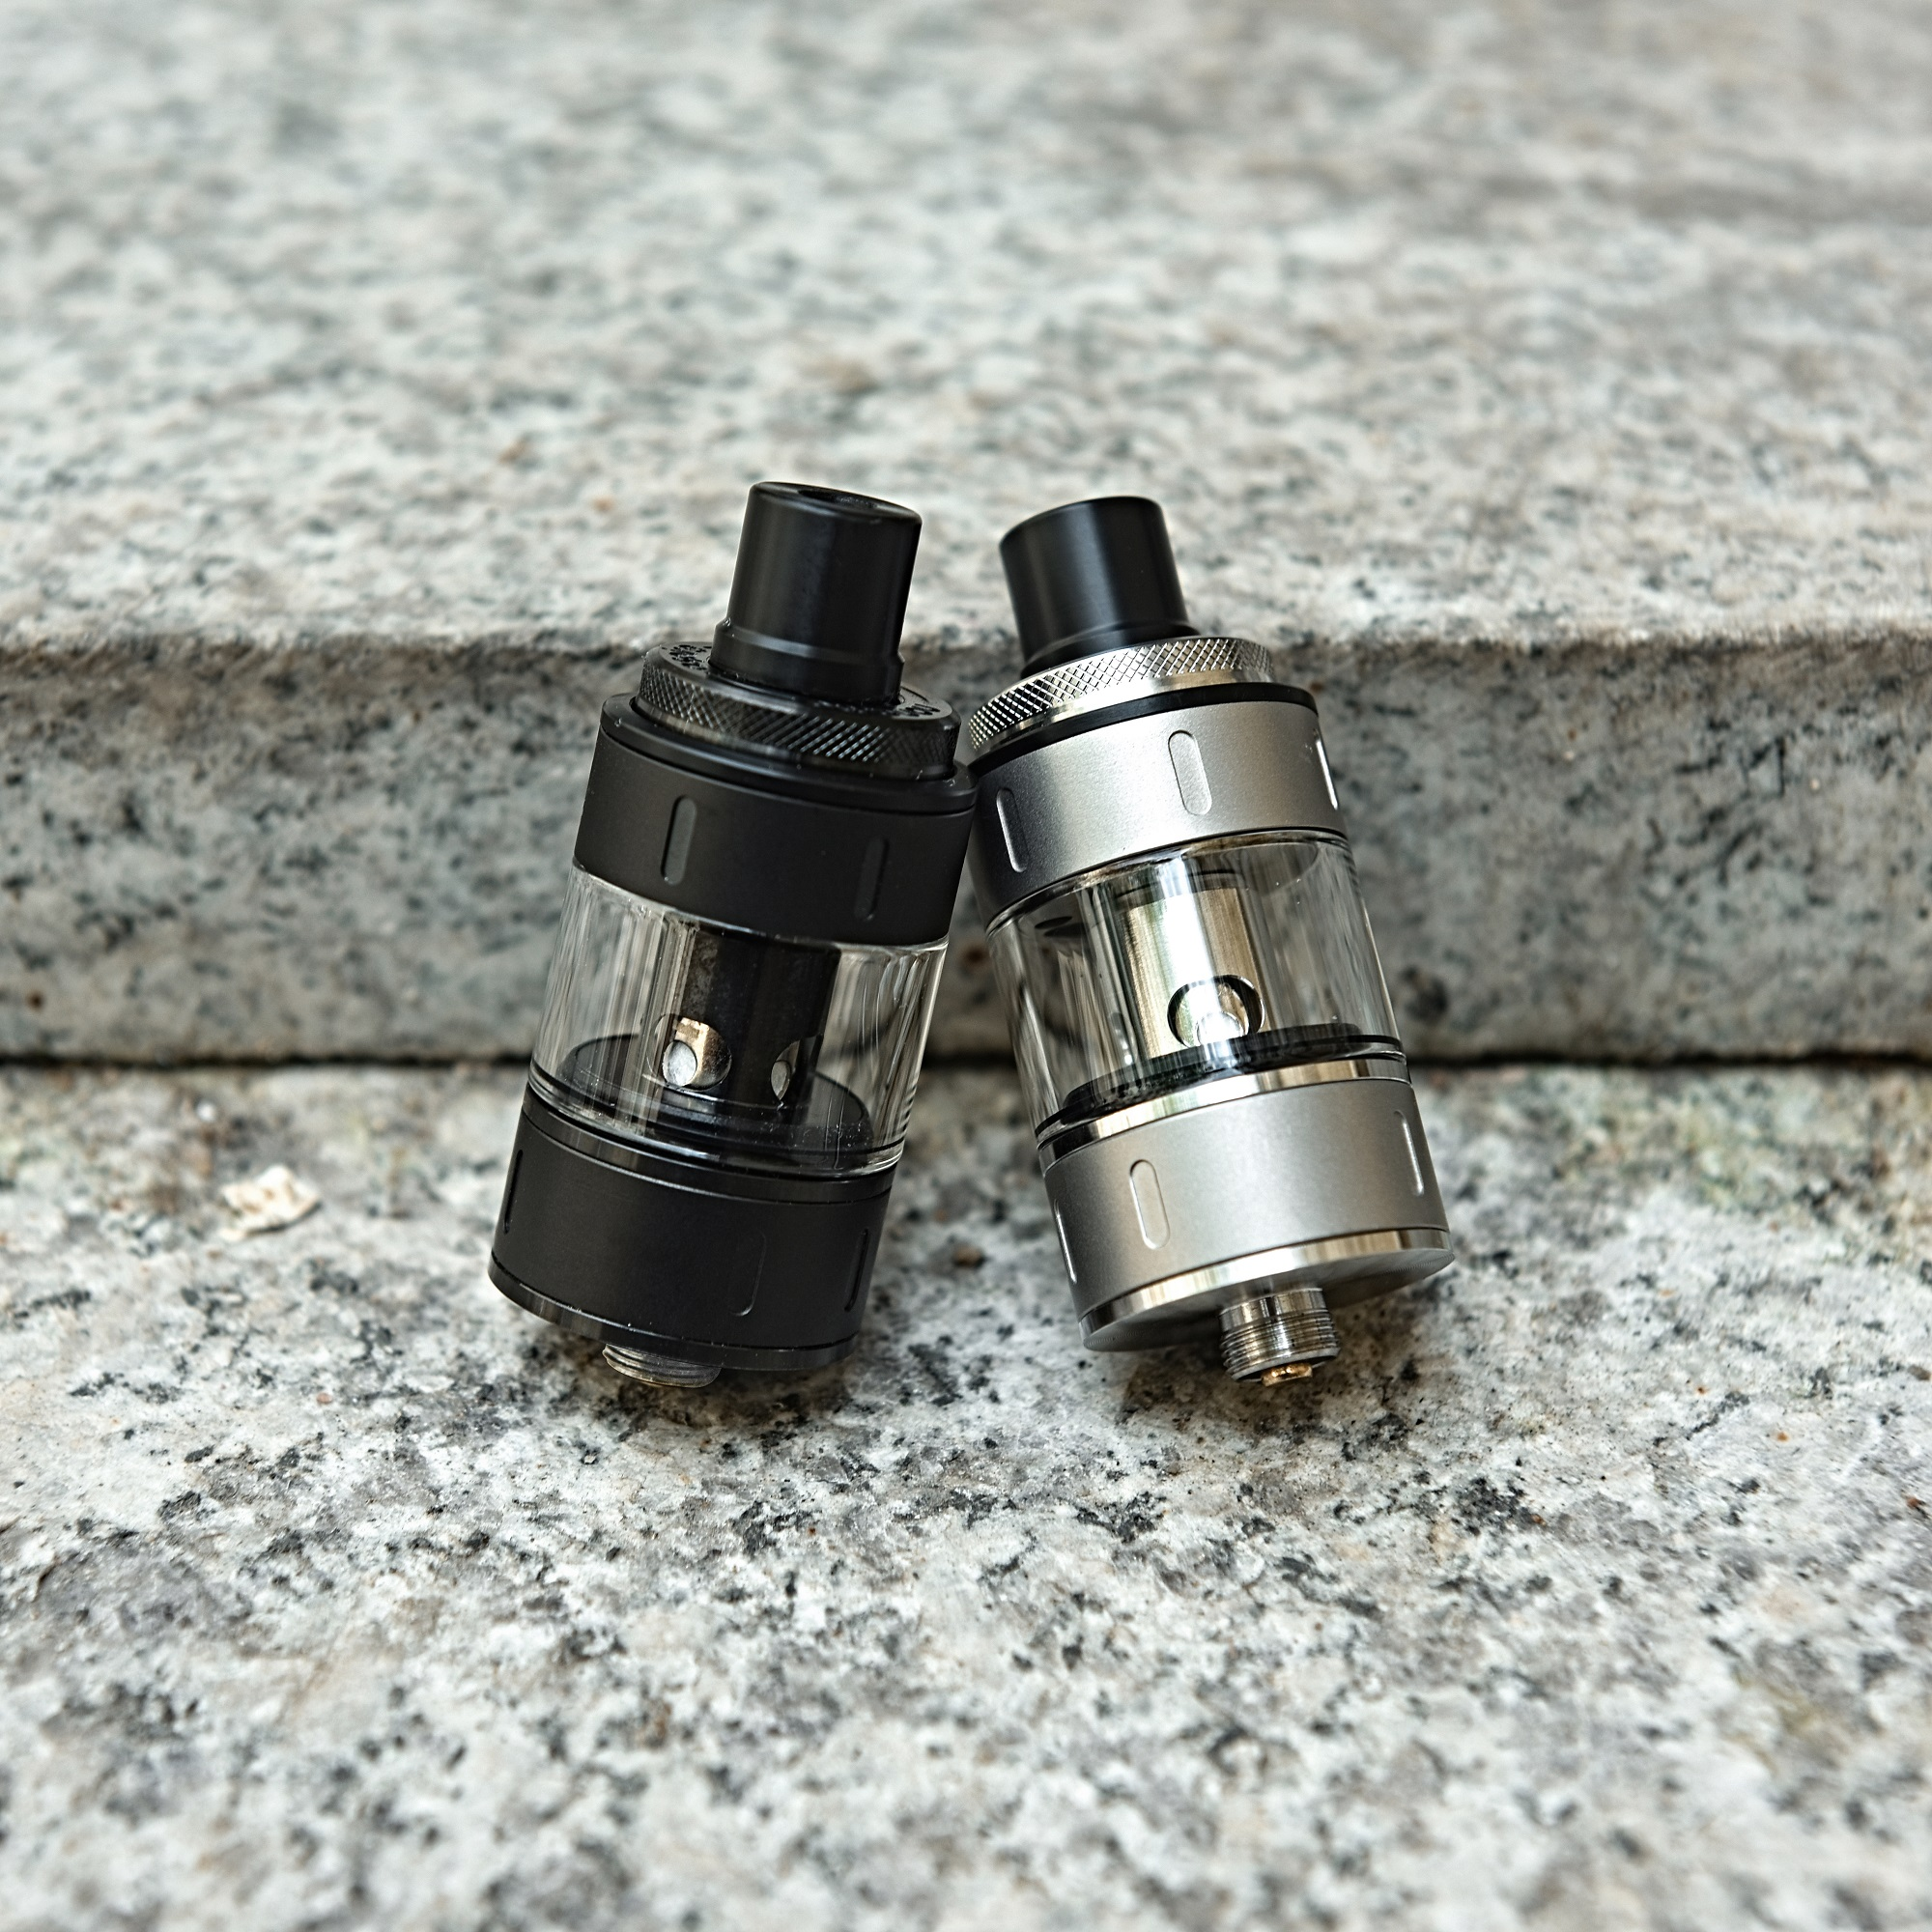 Aspire Noname 9 th Tank is also available as an RTA tank.